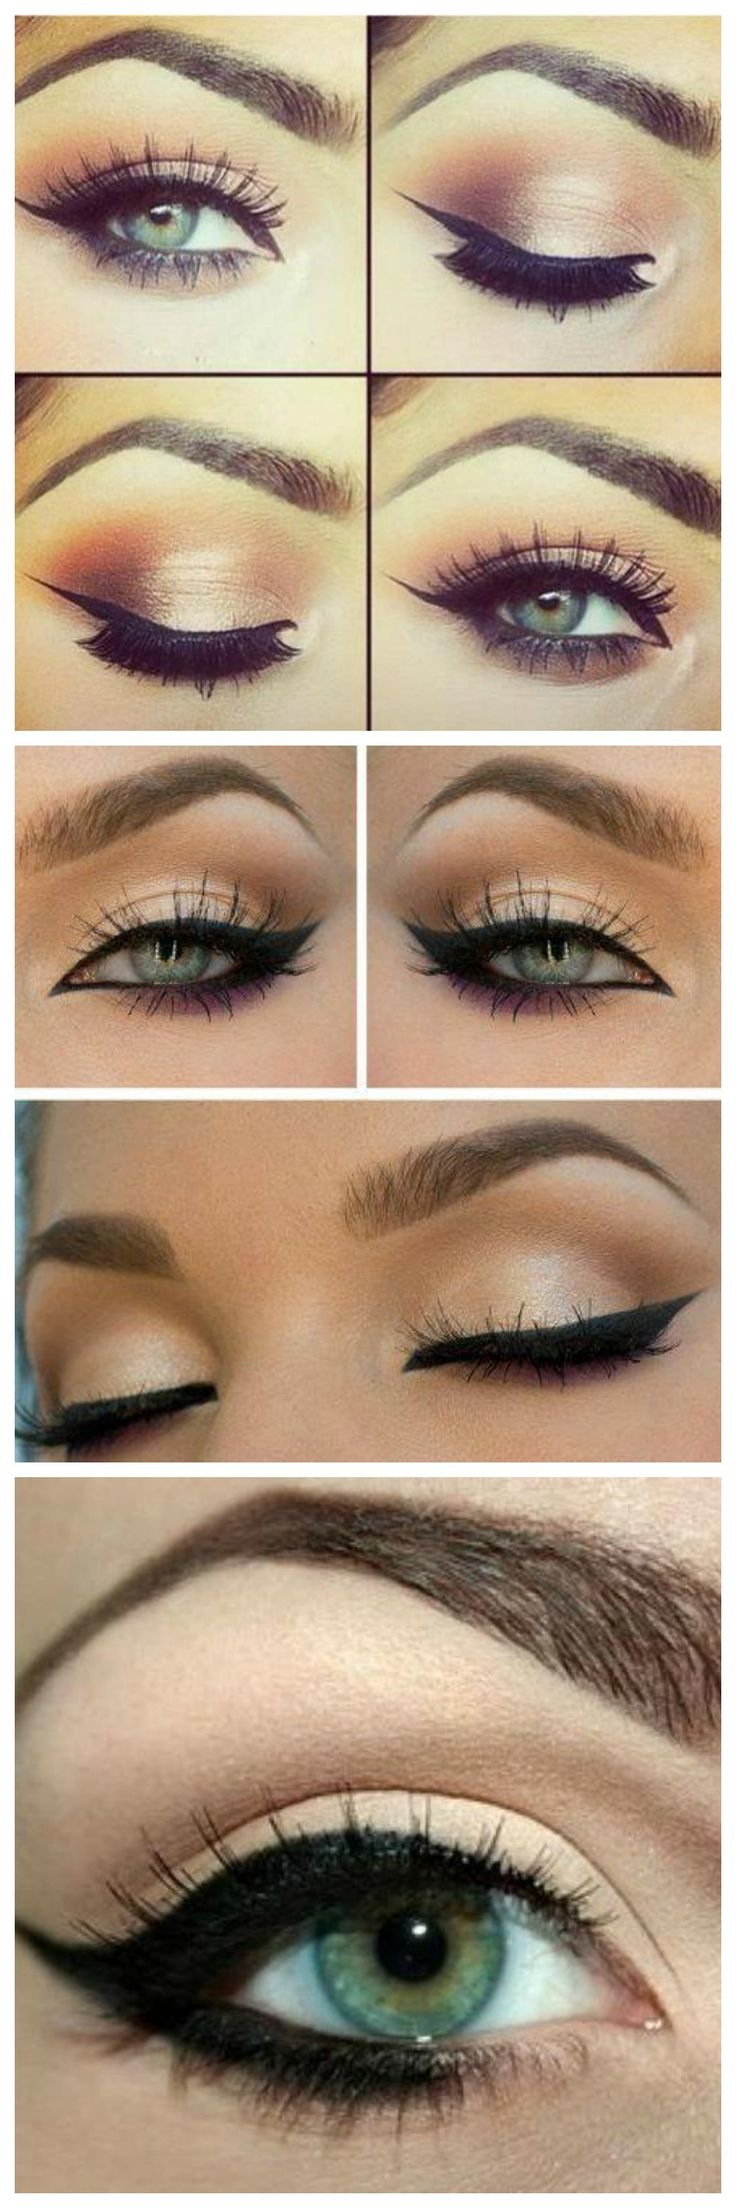 Makeup tips for almond shaped eyes